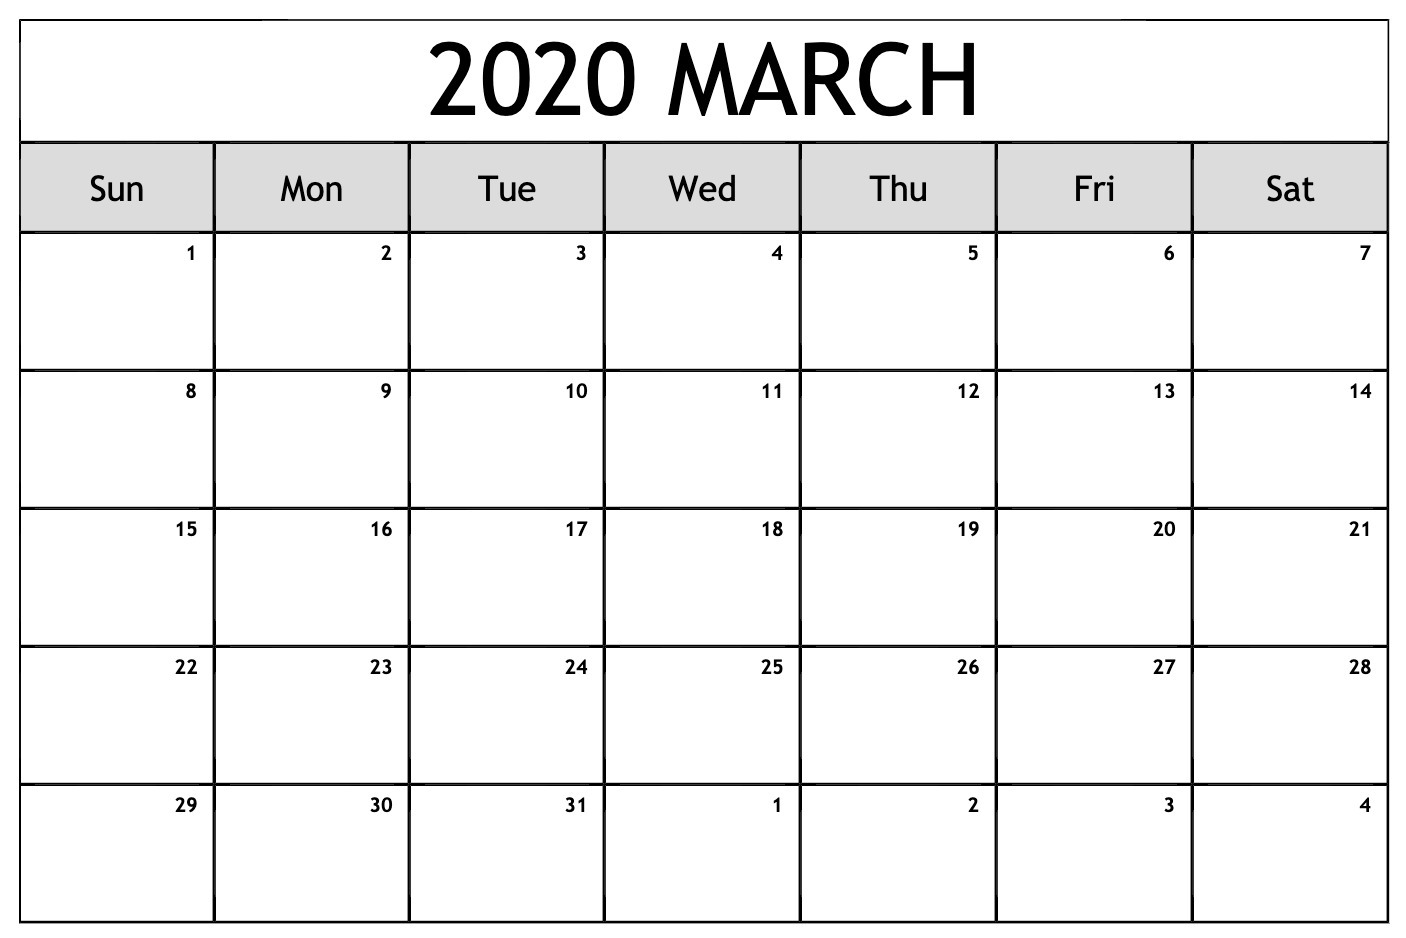 Calendario 2020 Word.March 2020 Calendar Pdf Word Excel Template